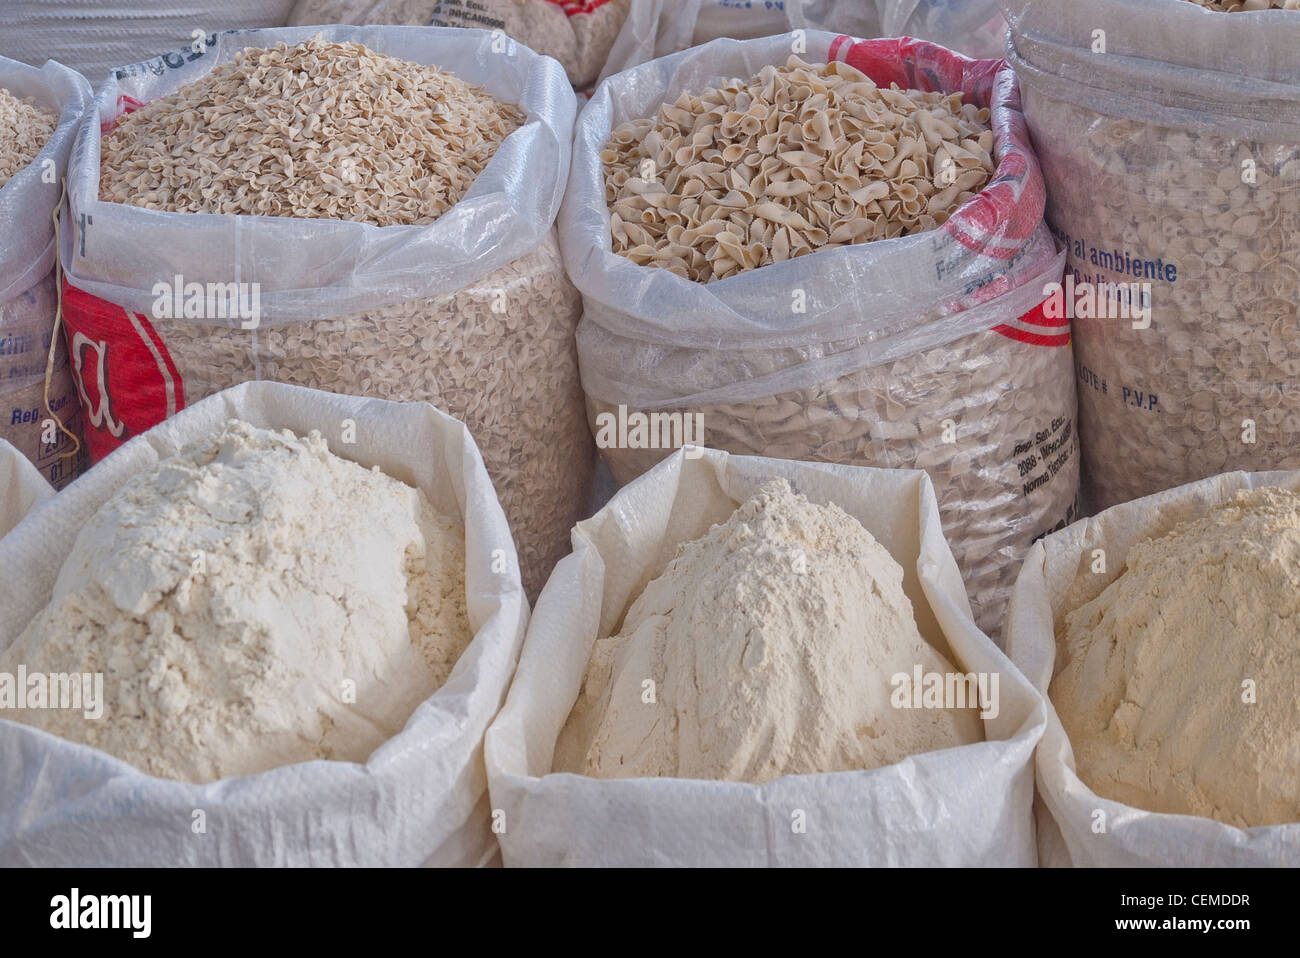 Open sacks of grains are on display for sale at the public market in Pujili, Ecuador. - Stock Image